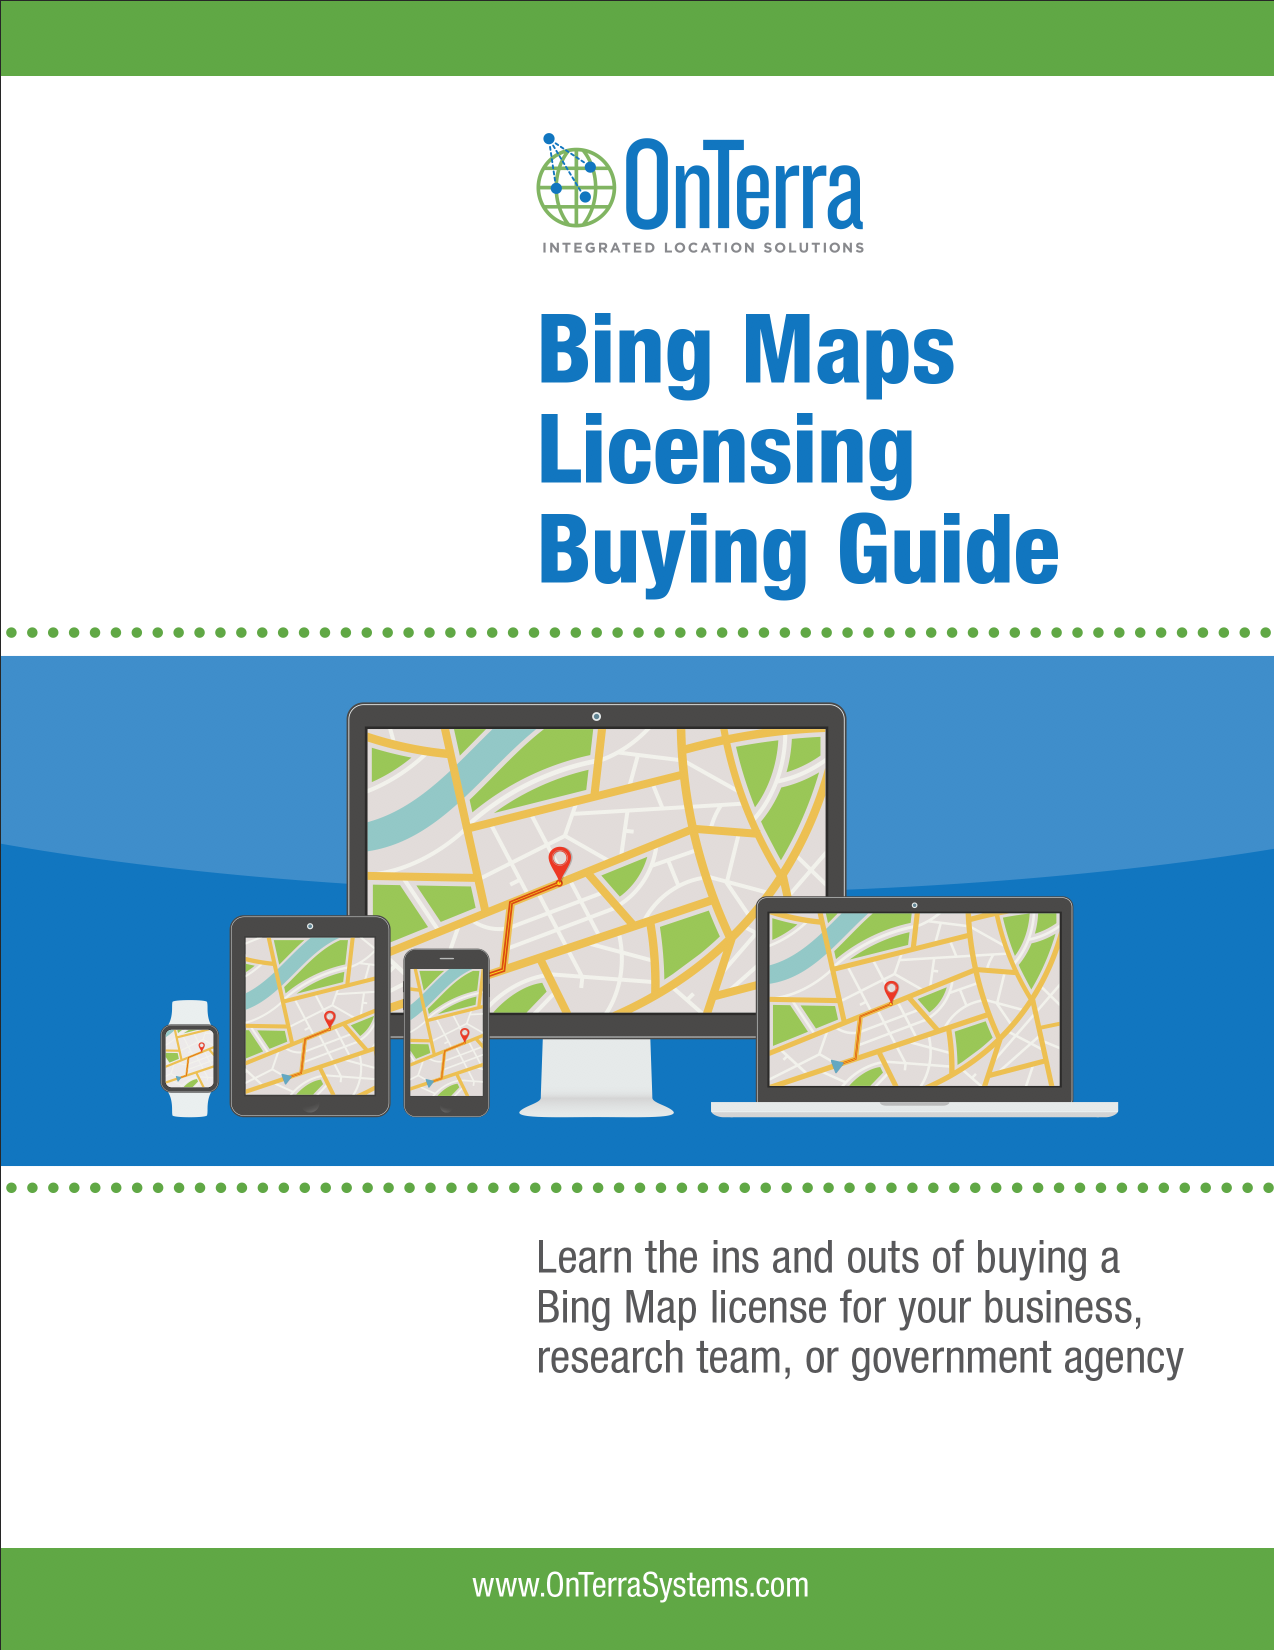 Bing Maps Licensing Buying Guide | OnTerra Systems USA